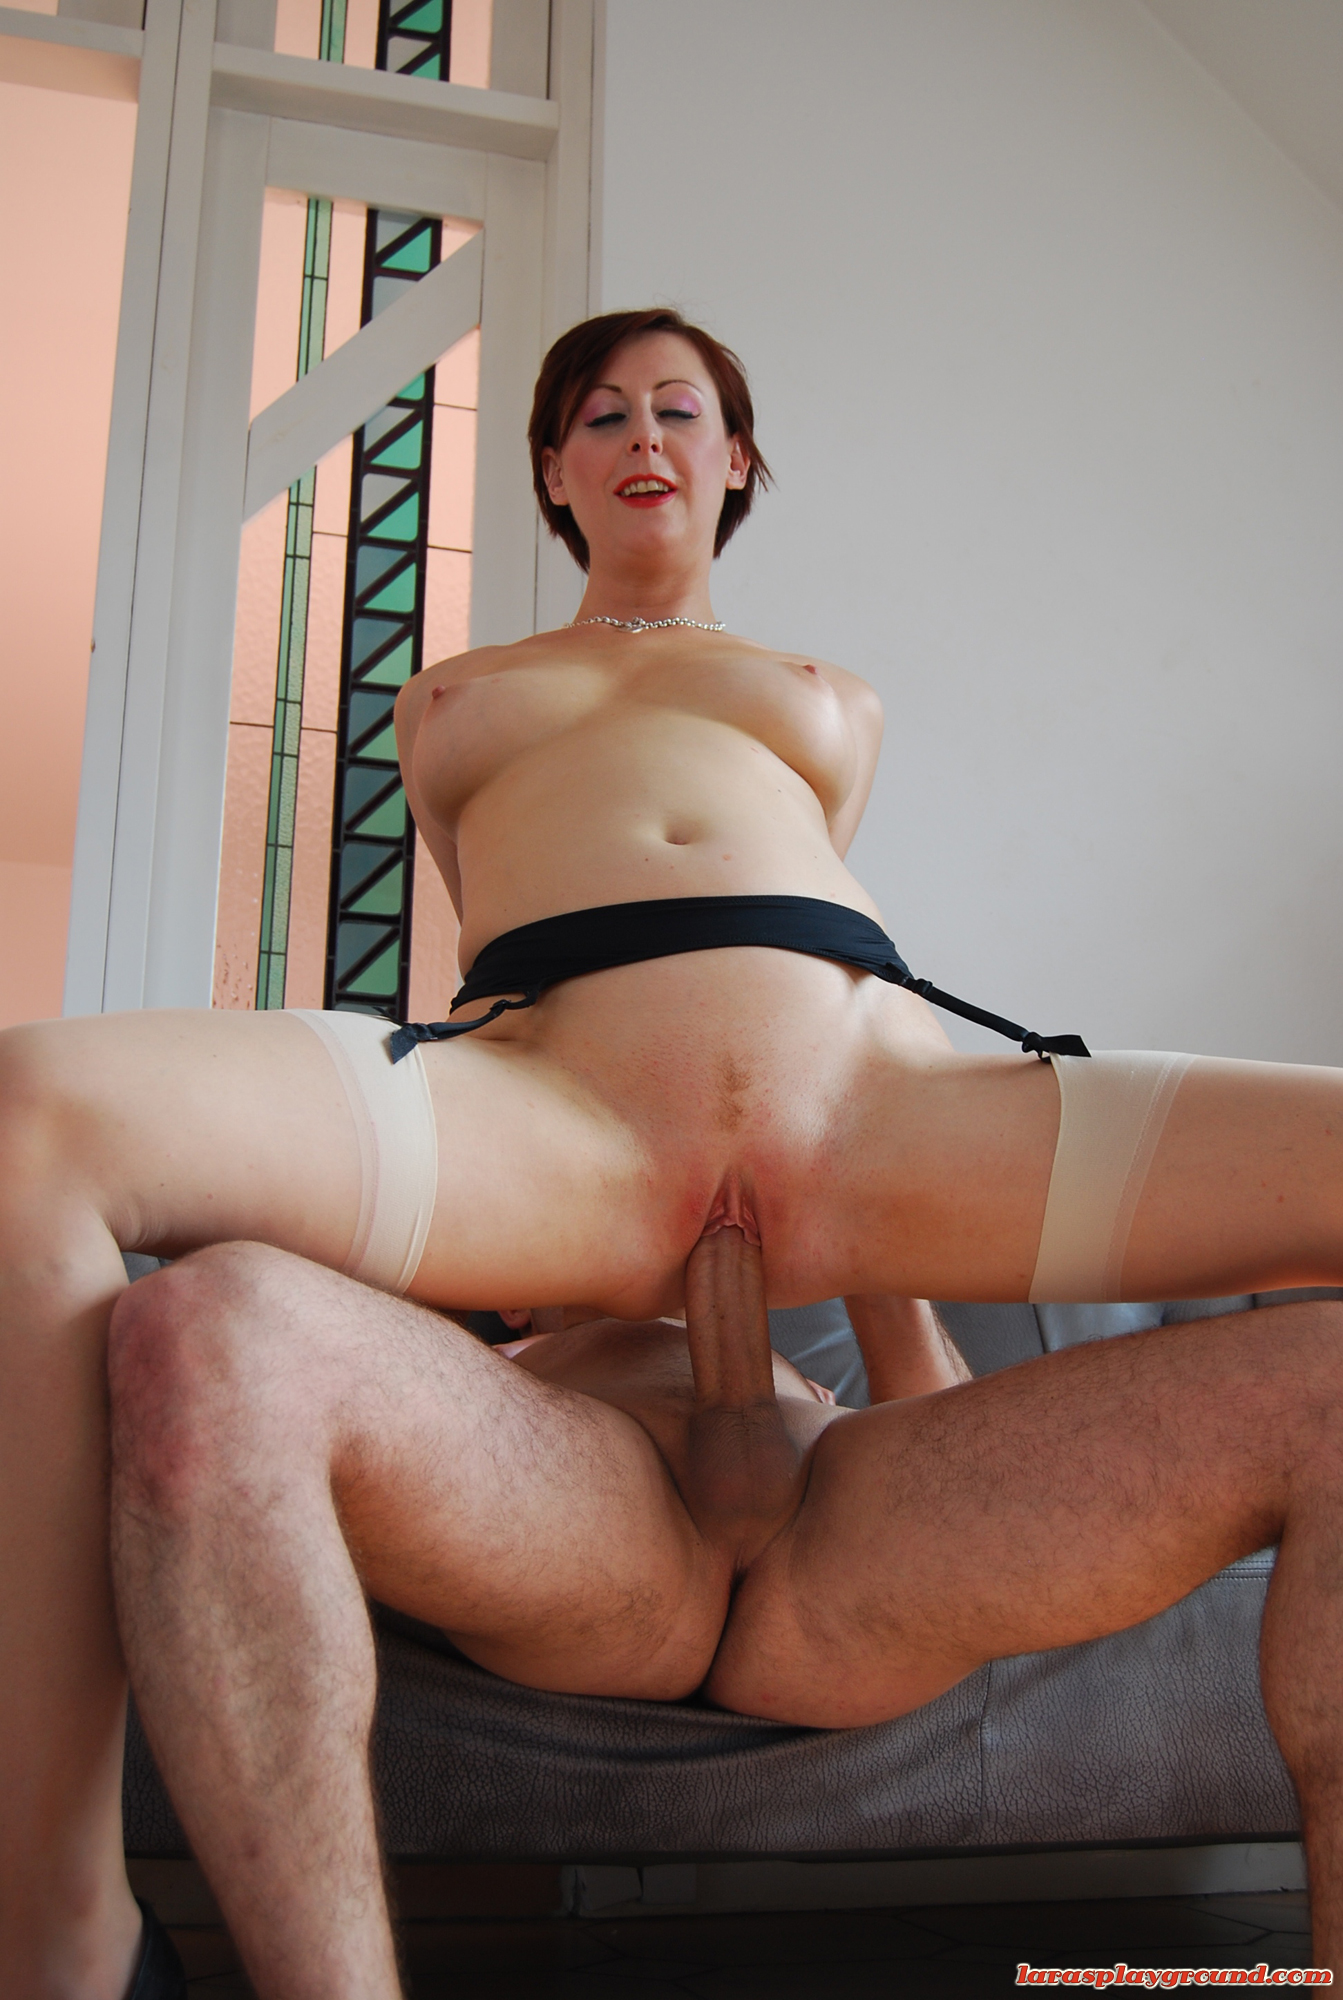 what crying wife forced in to anal confirm. join told all